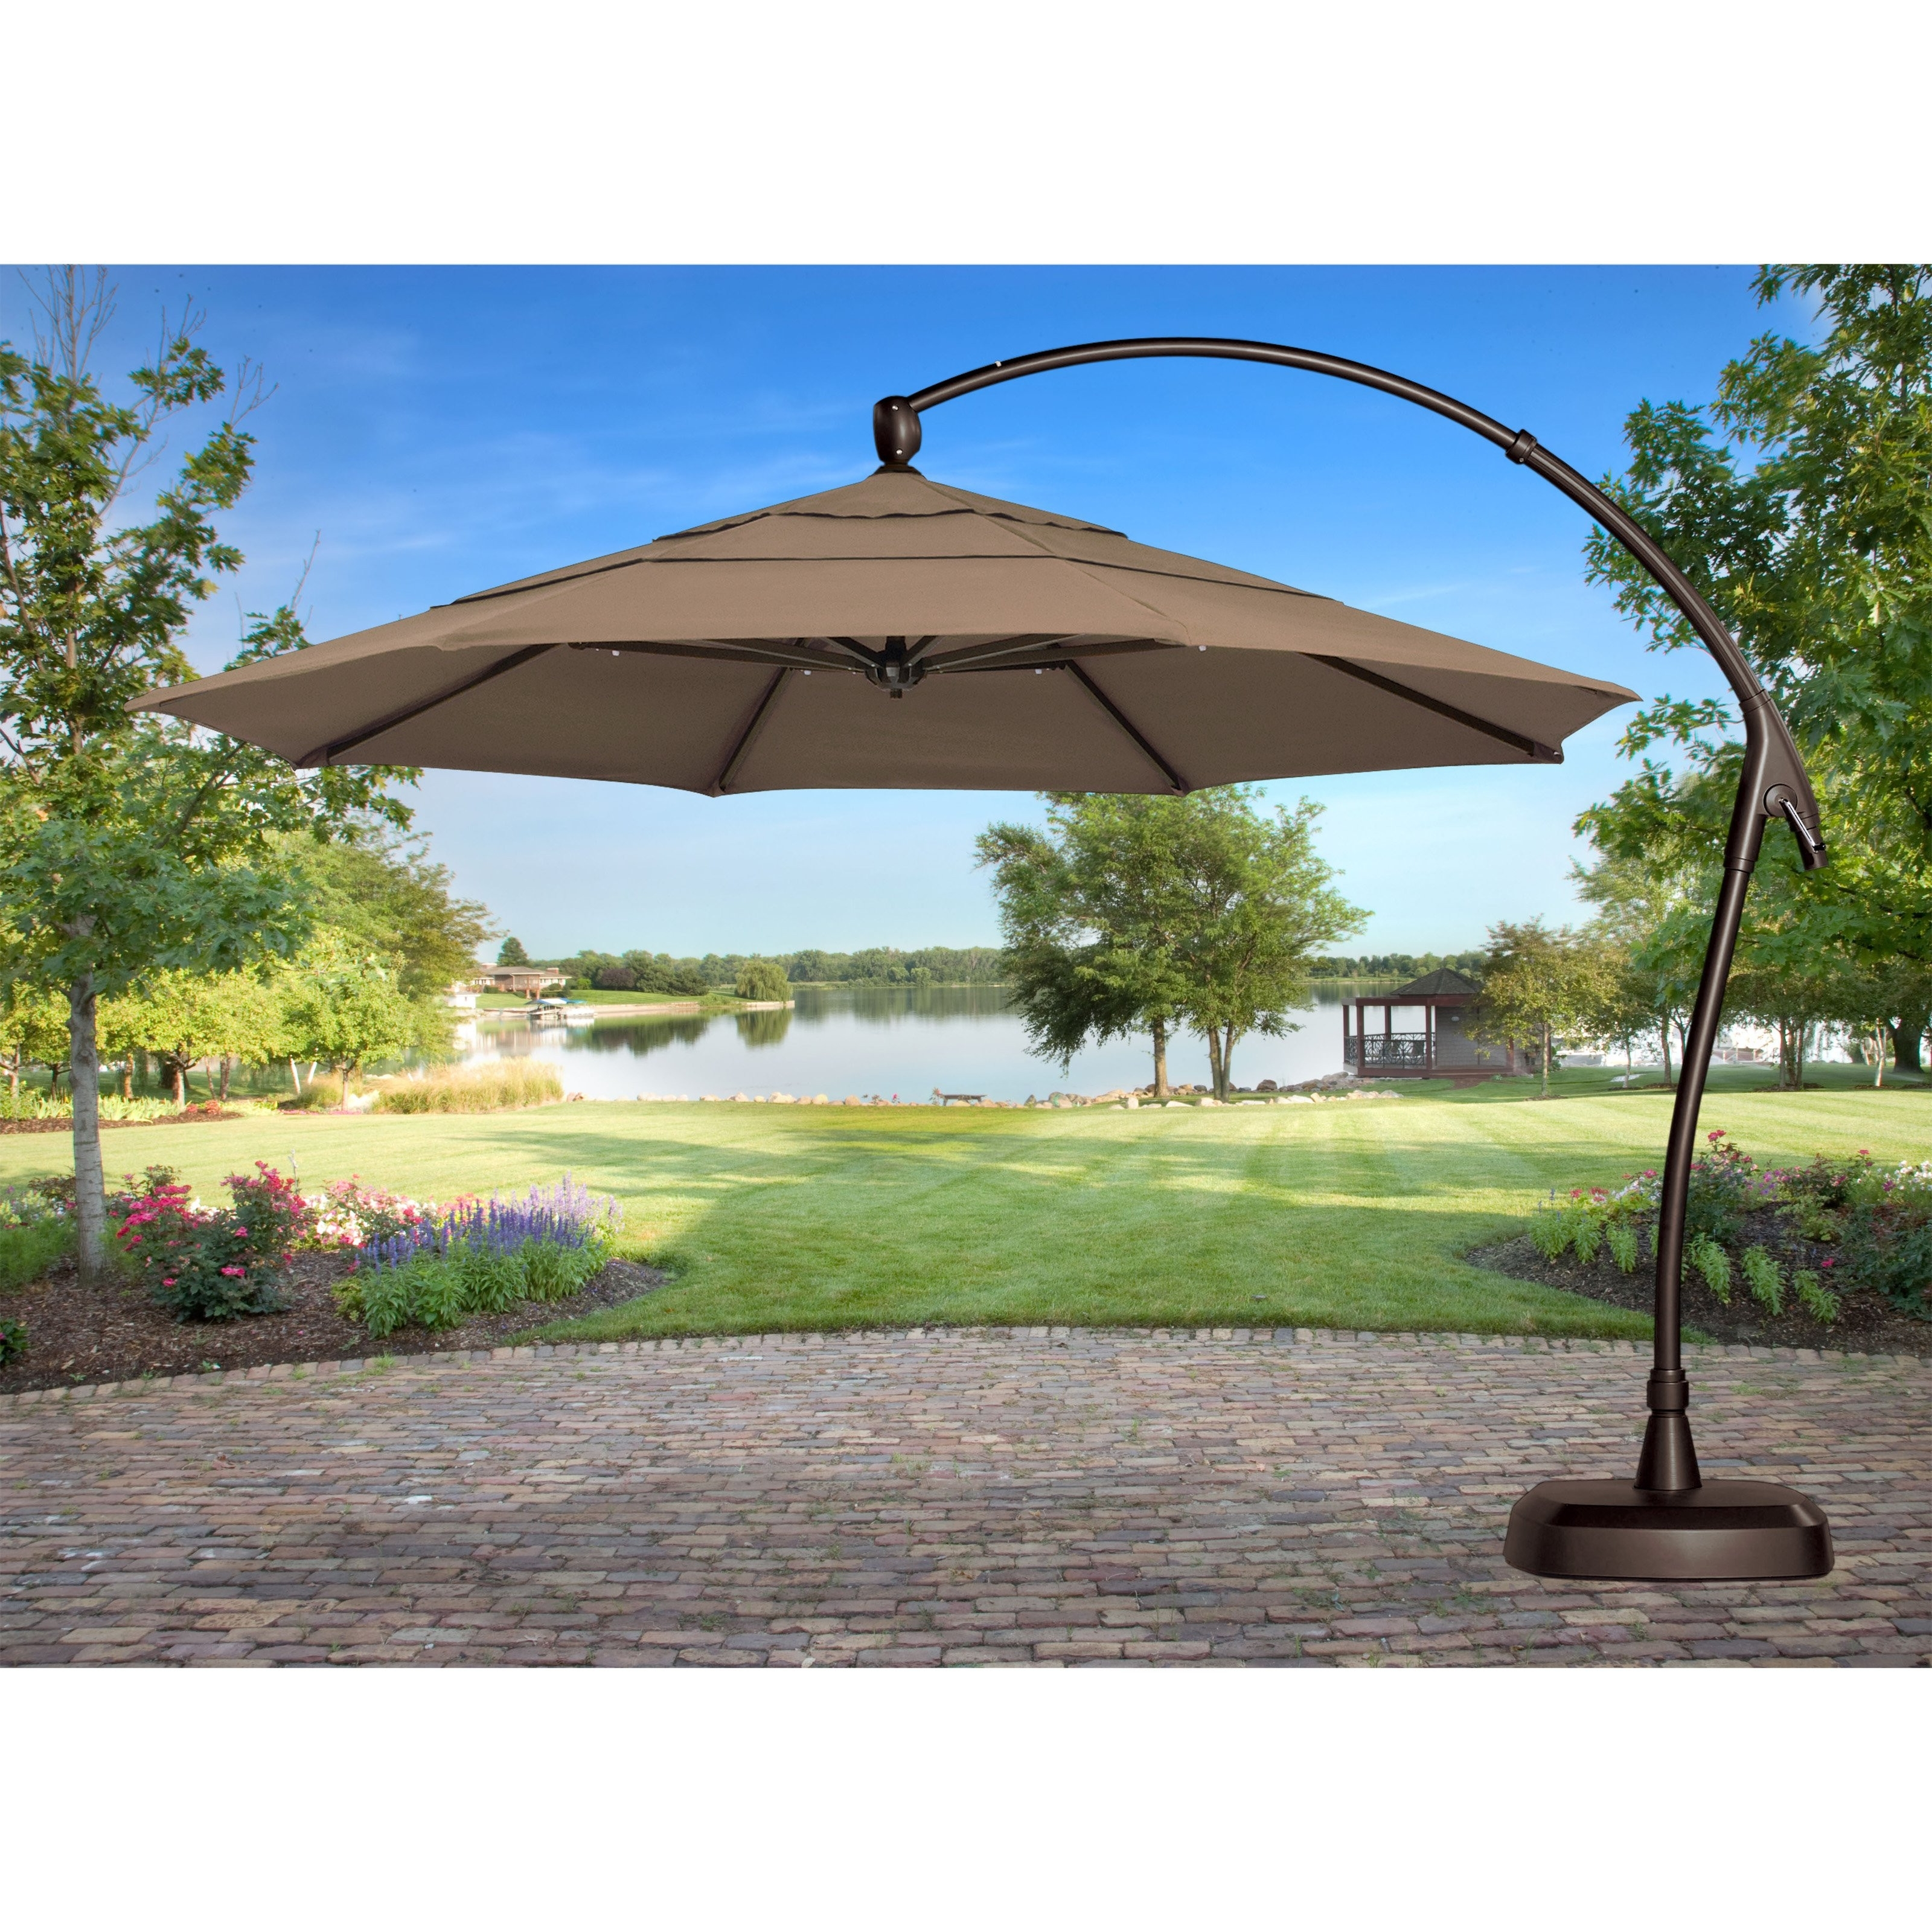 Walmart Patio Umbrellas Treasure Garden 11 Ft Obravia Cantilever Intended For Current 11 Foot Patio Umbrellas (View 18 of 20)